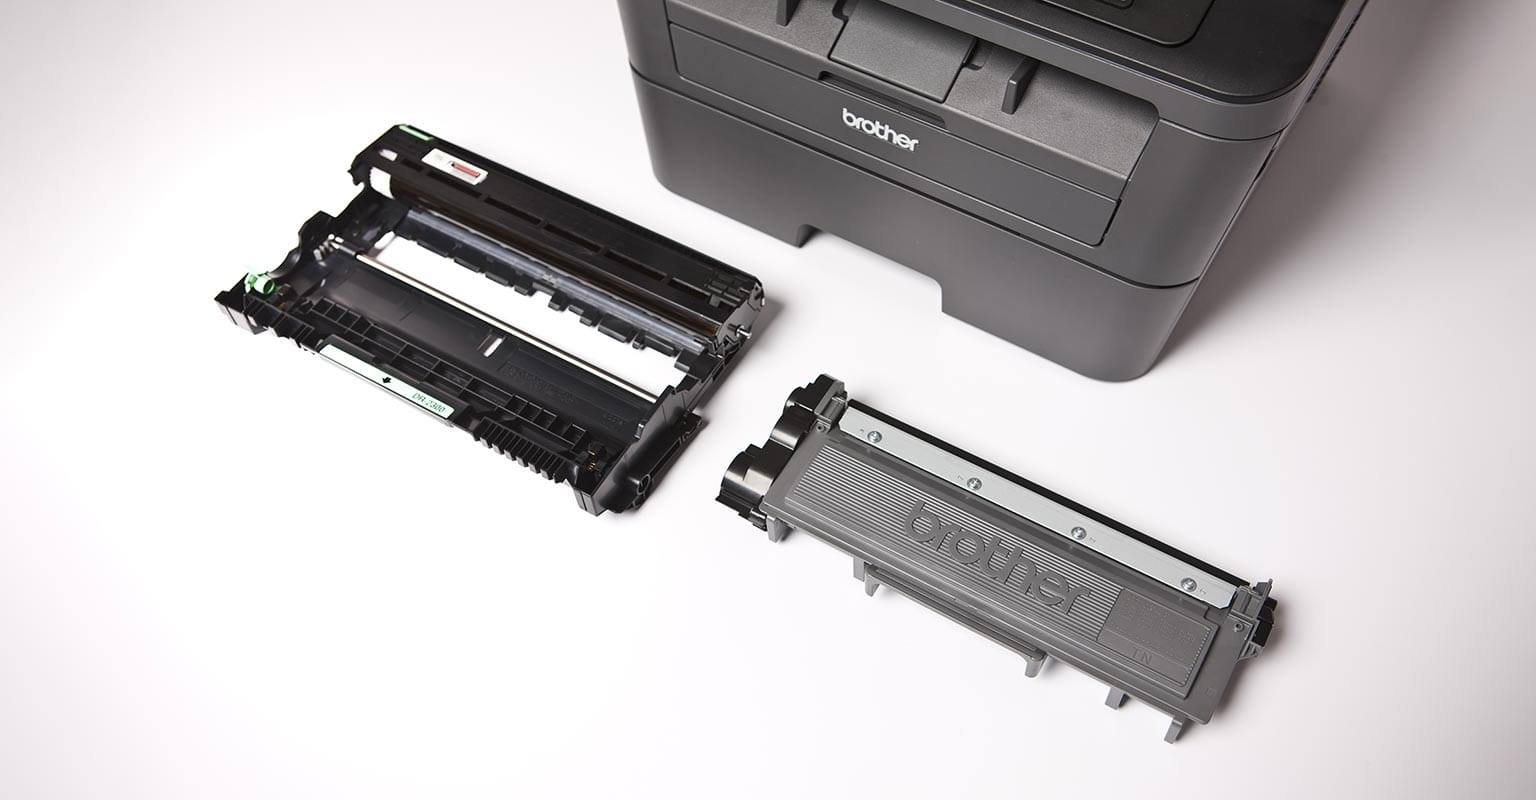 Brother L2540 mono laser printer with toner cartridge